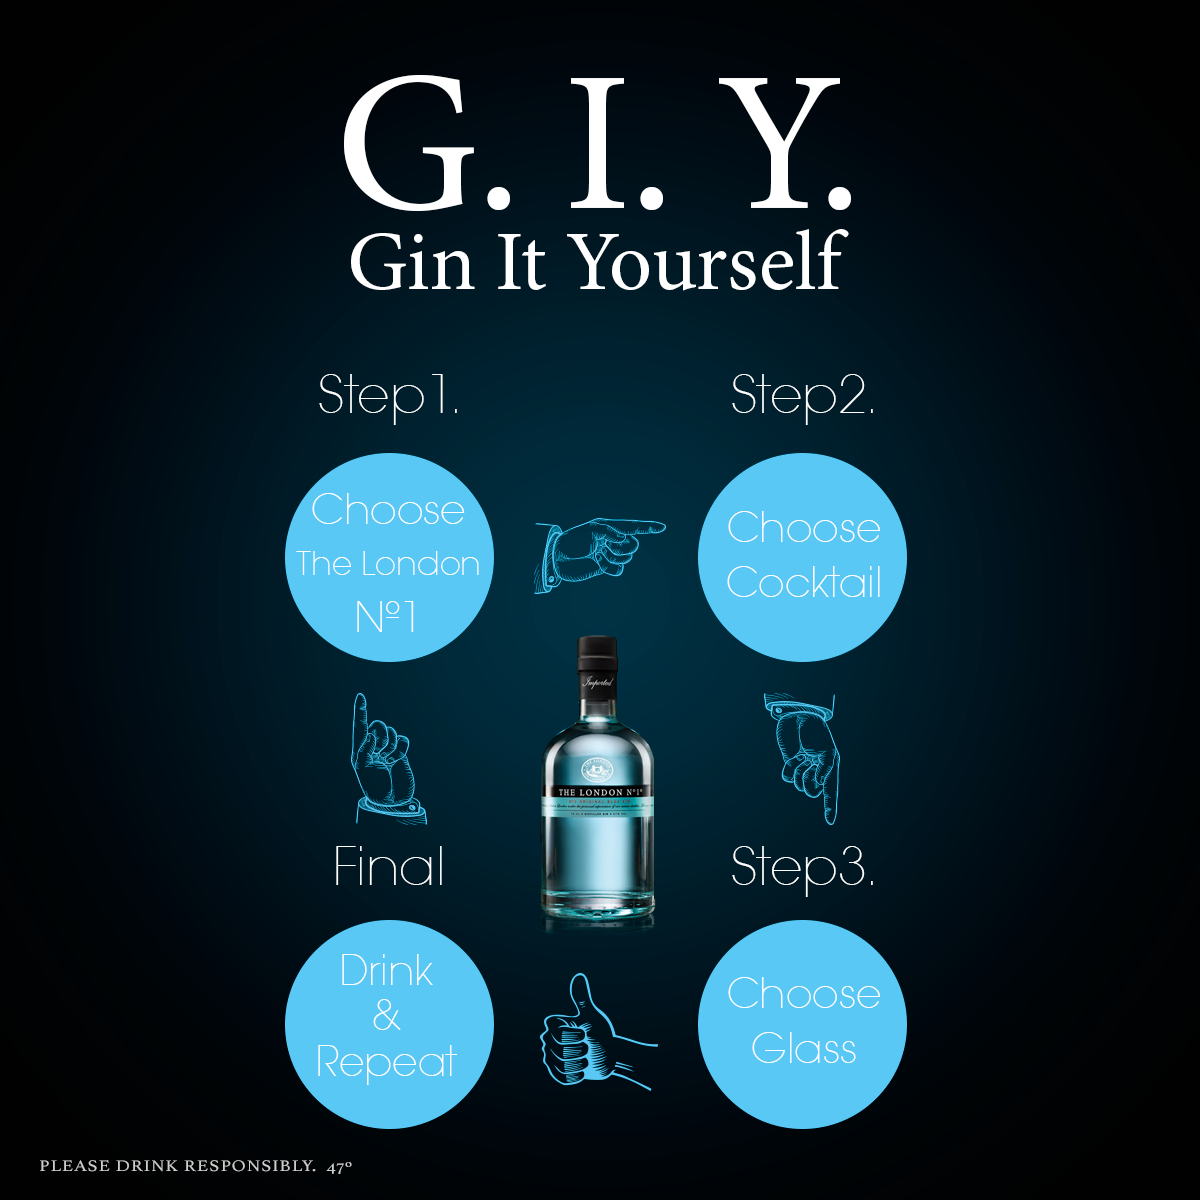 Do it yourself or gin it yourself oneandonly diy do it yourself or gin it yourself solutioingenieria Images